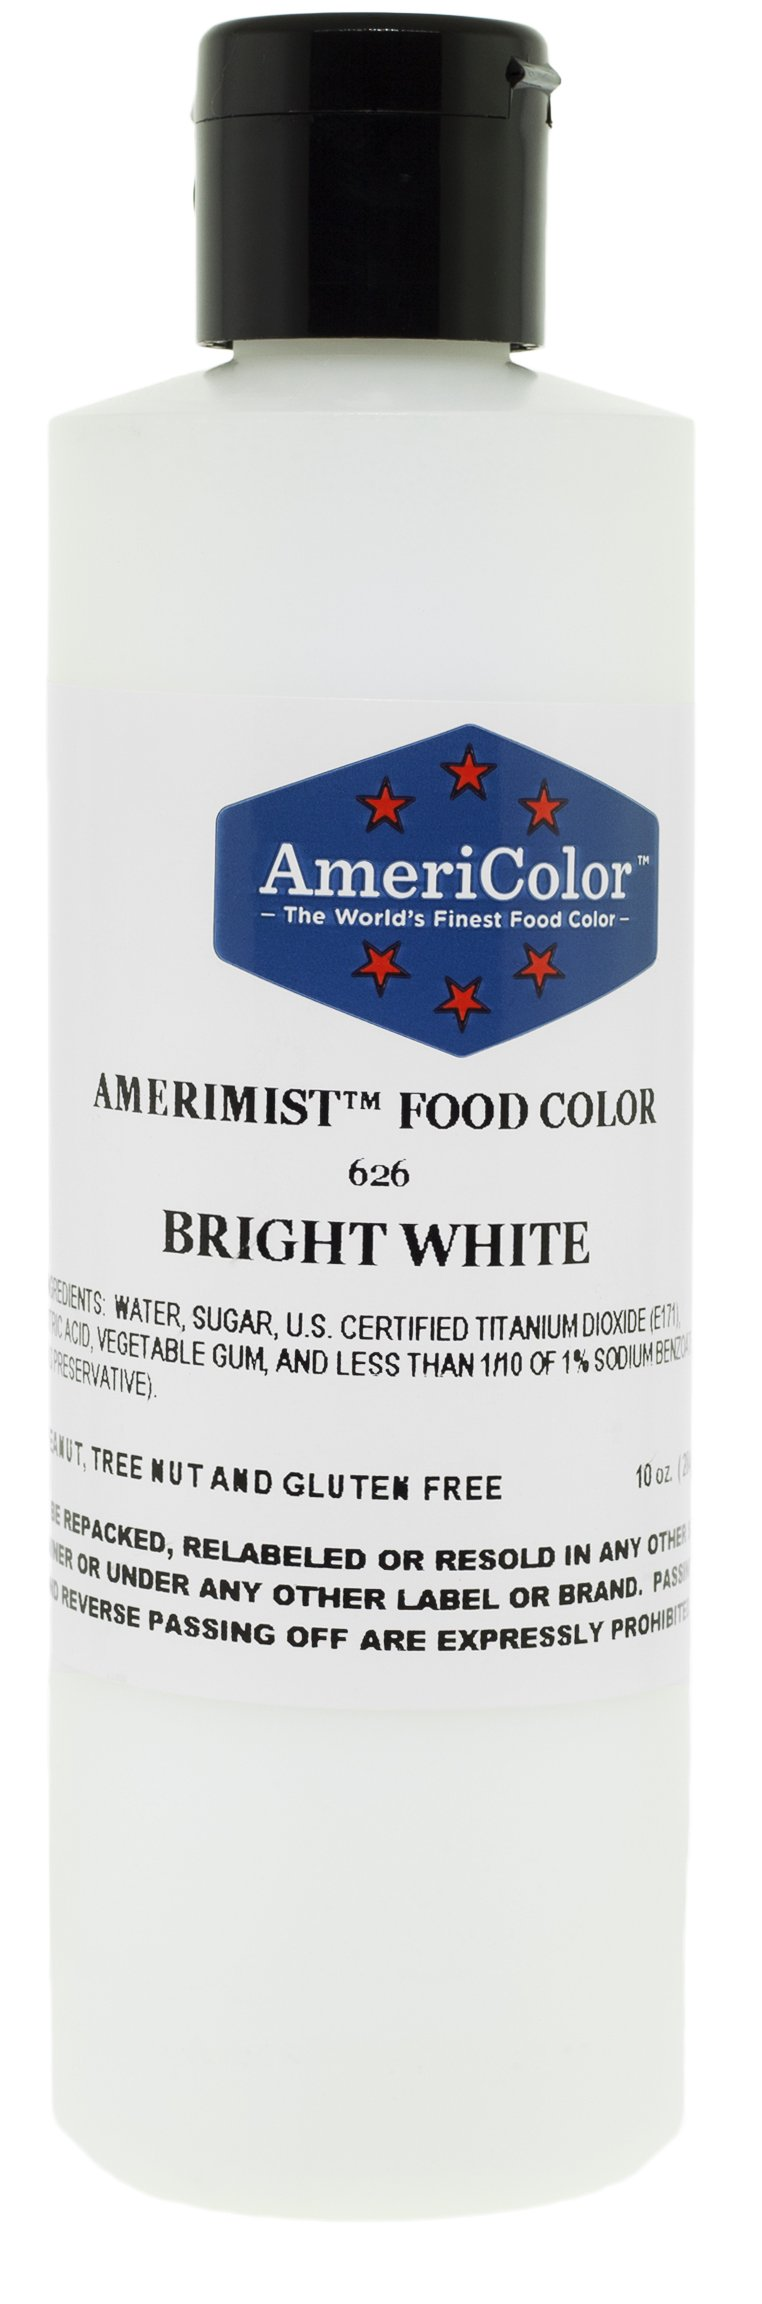 AmeriColor Food Coloring AmeriMist Bright White Airbrush Food Color, 10 Ounce